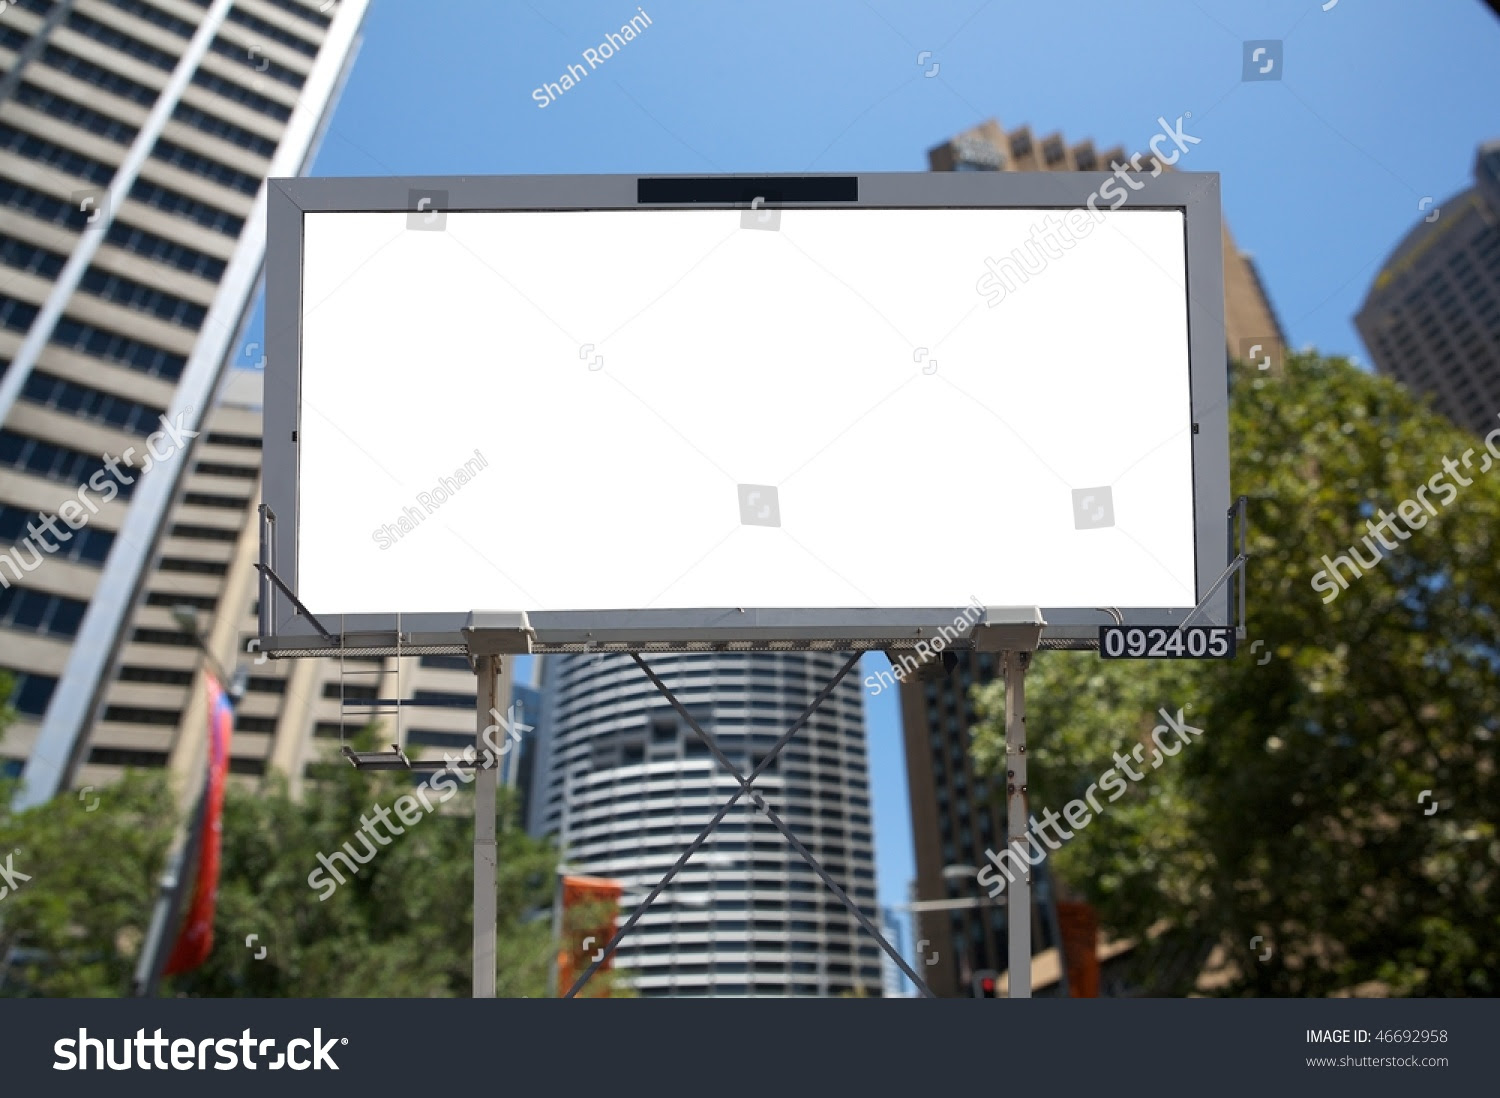 Blank Commercial Billboard City Building On Stock Photo 46692958 ...